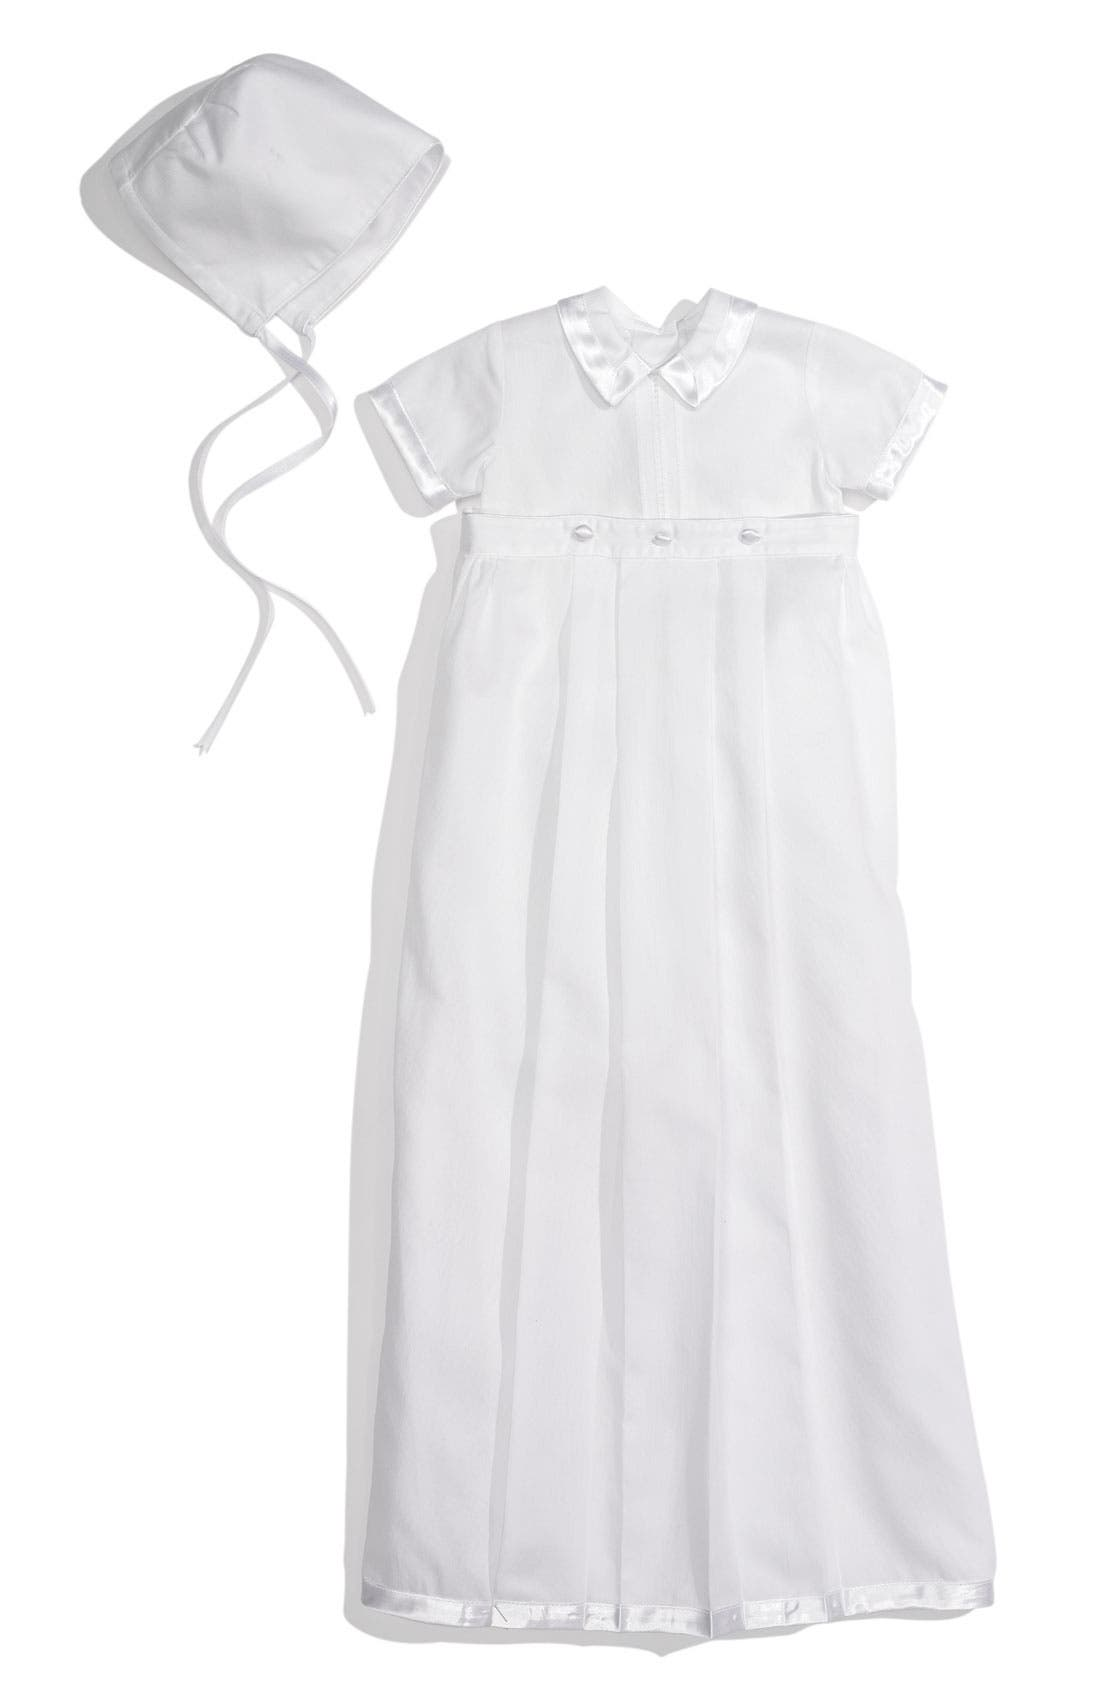 Alternate Image 1 Selected - Kissy Kissy Convertible Christening Gown Set (Infant)